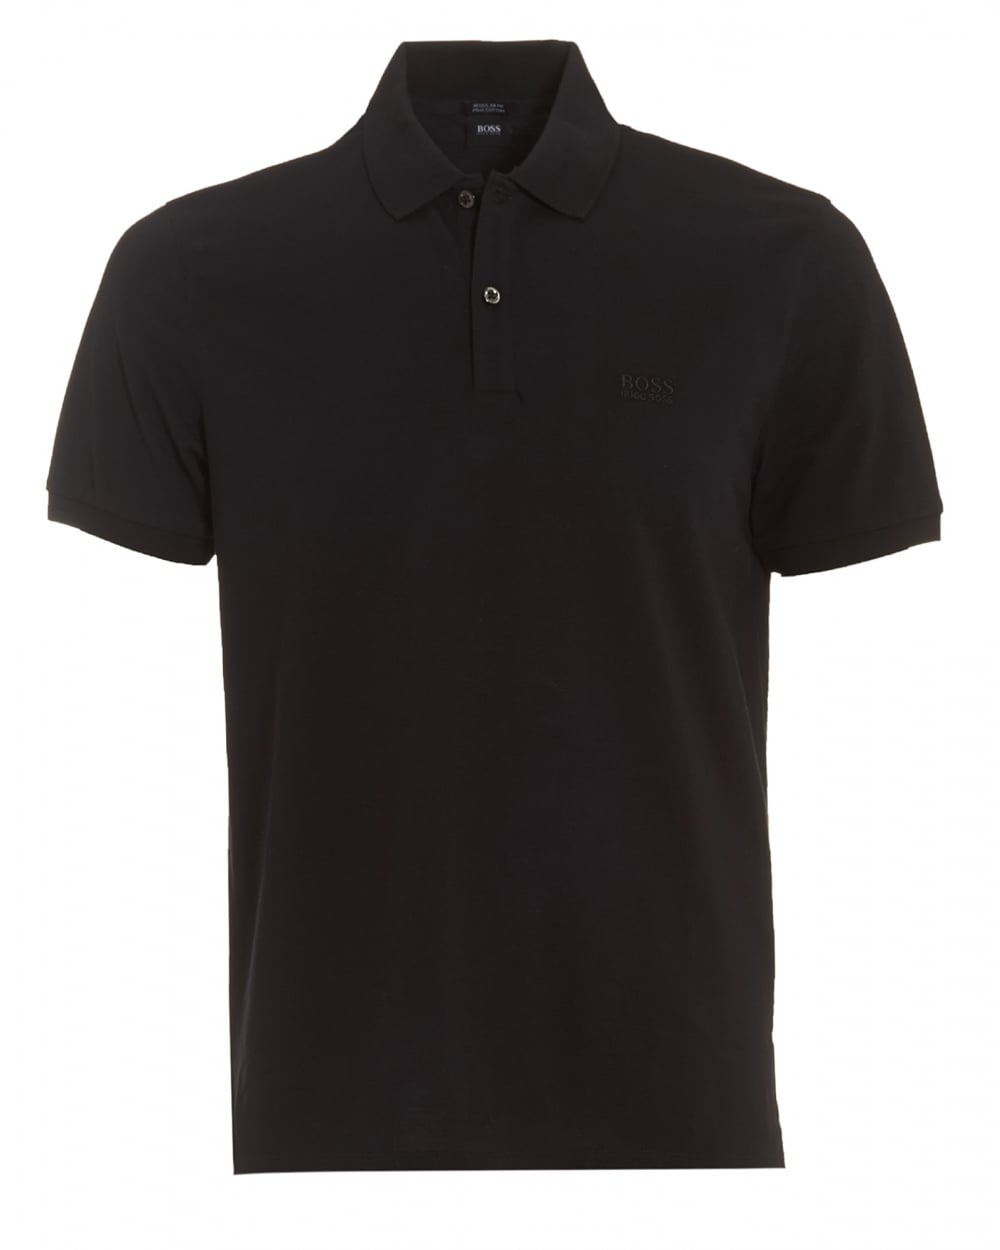 Hugo boss black mens pallas polo black regular fit plain for Men s regular fit shirts